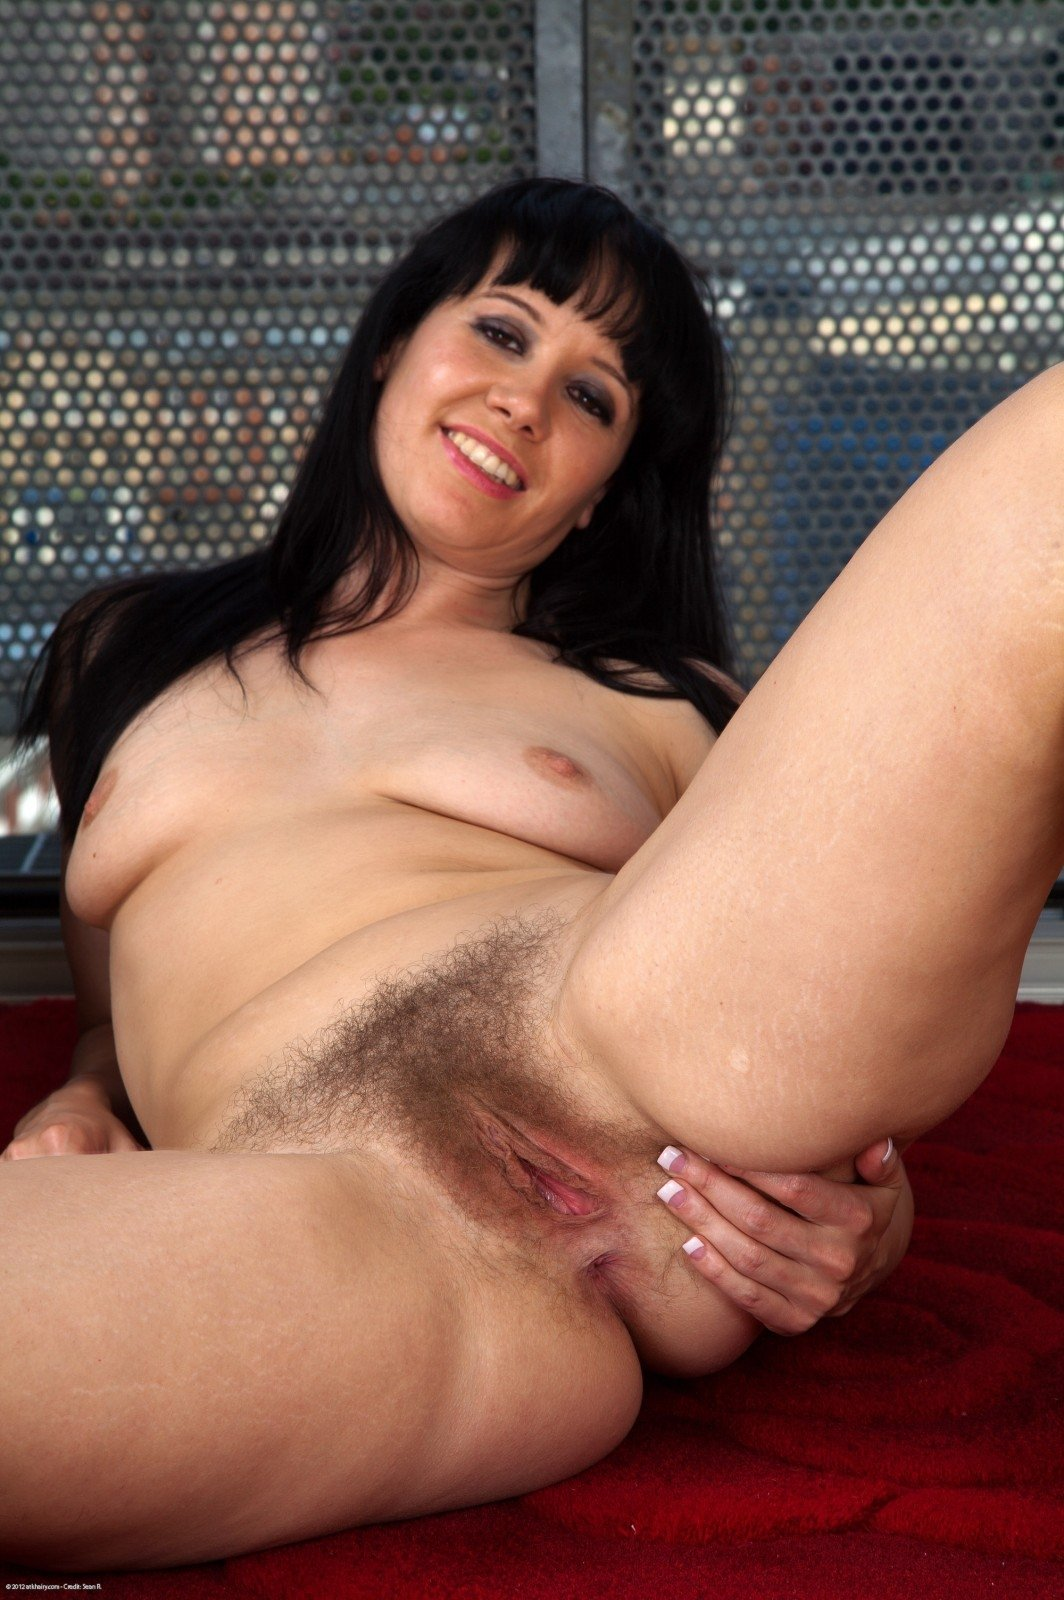 Red tube mom anal #1